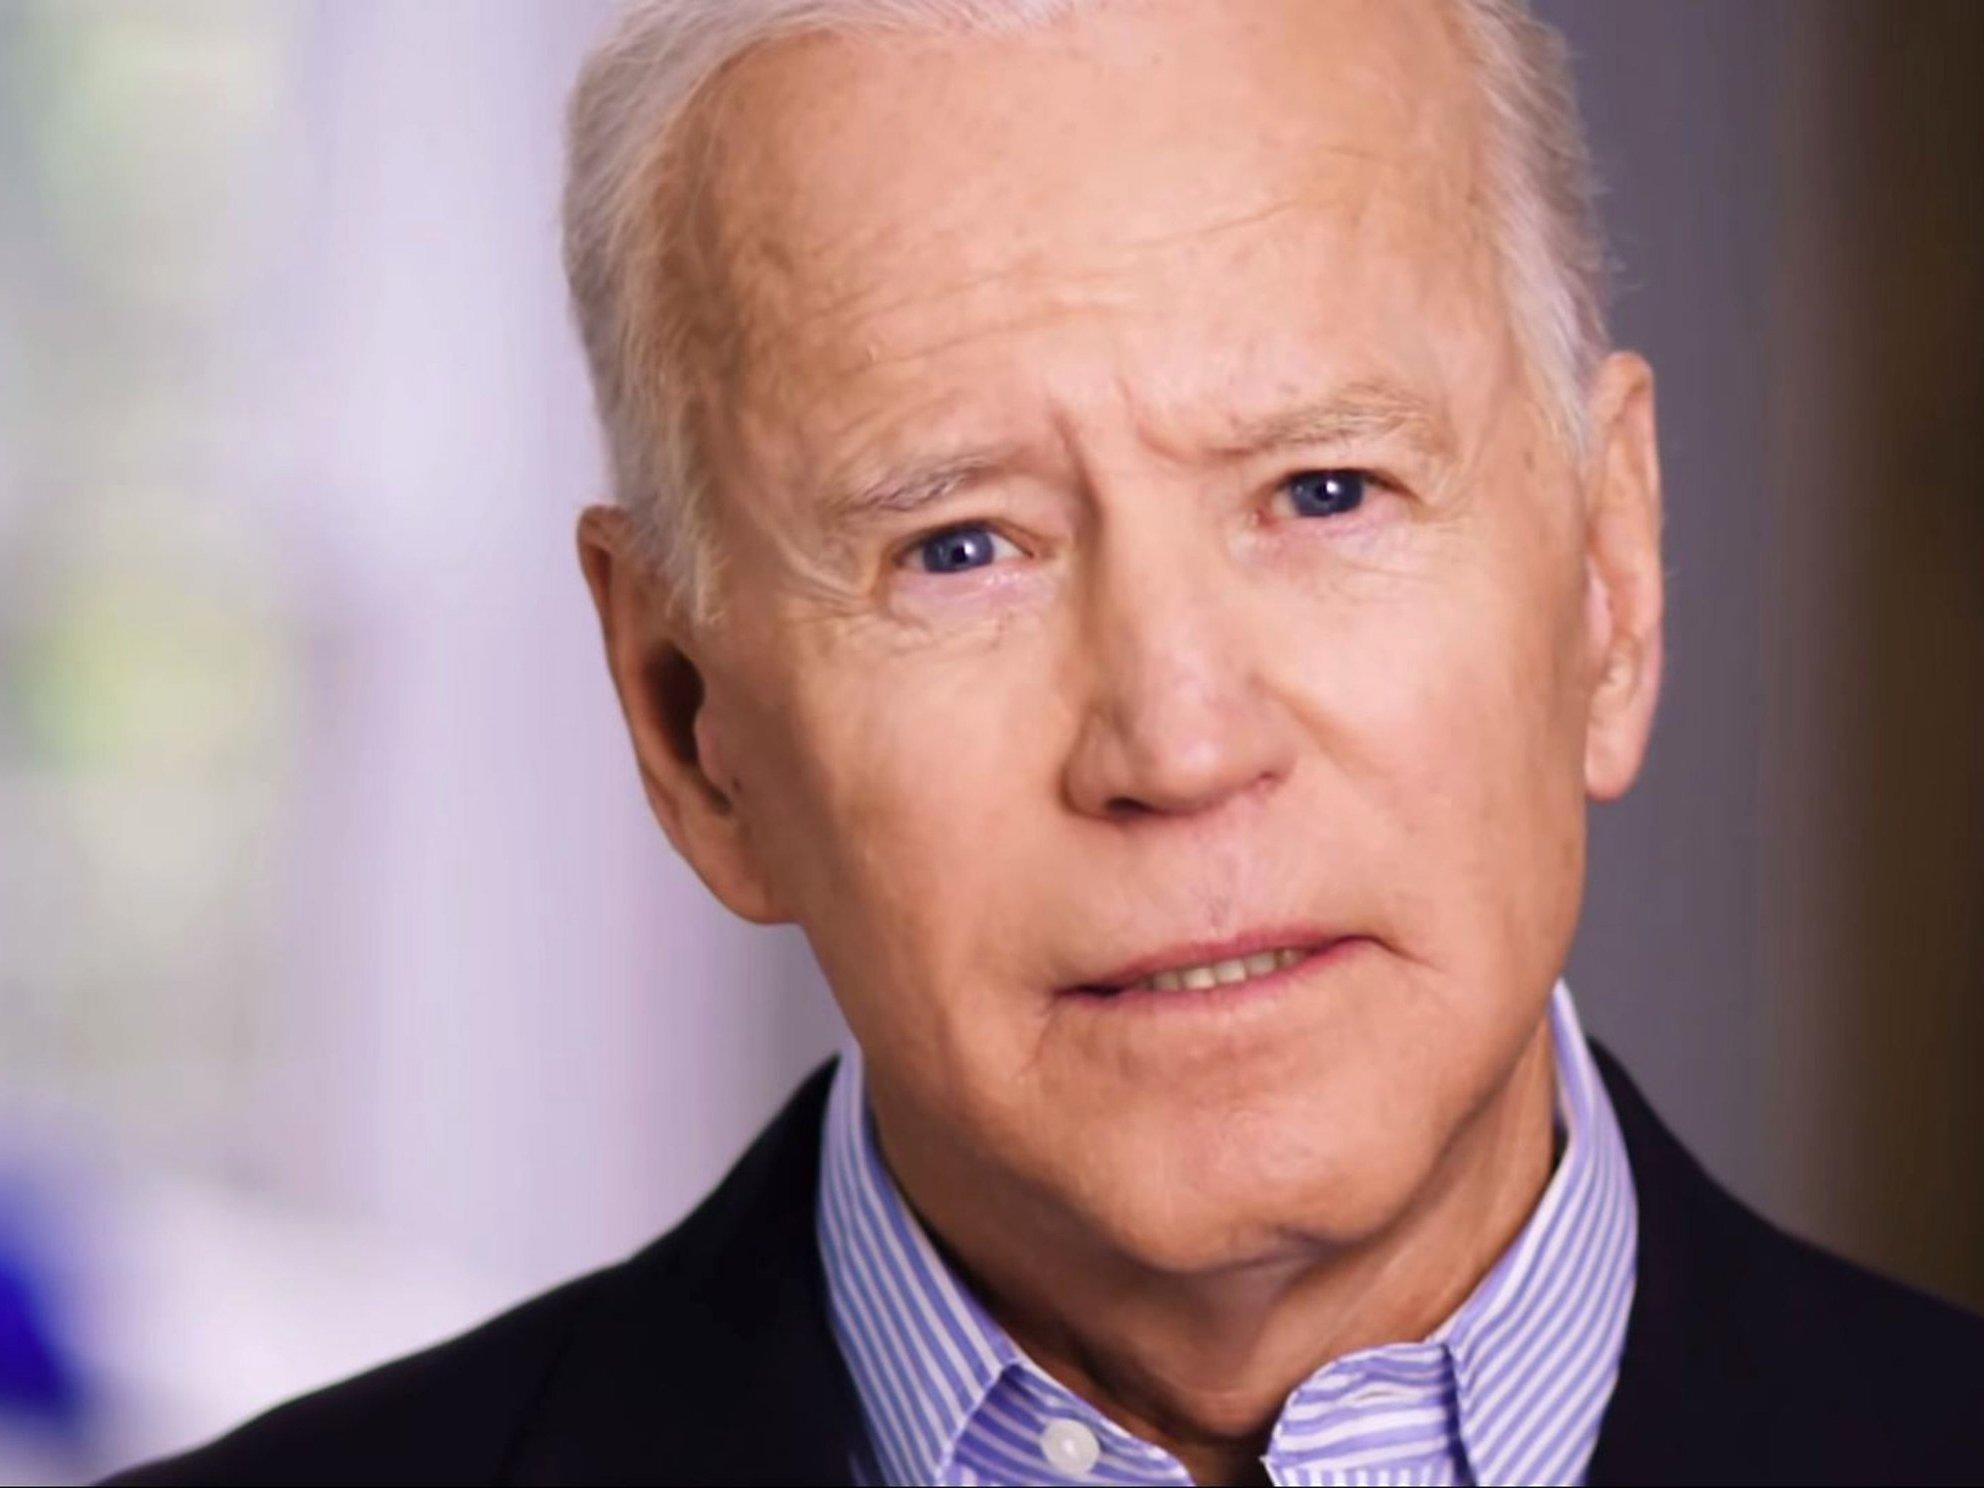 """A progressive group aligned with Alexandria Ocasio-Cortez, has blasted Joe Biden as the """"old guard"""" of Democratic politics, just hours after the former vice president announced his candidacy for president.Justice Democrats, a PAC that supported candidates like Ms Ocasio-Cortez in 2018, declared on Thursday morning it would support whoever becomes the Democratic nominee — but claimed candidates such as Mr Biden had divided America and led to the election of Donald Trump.""""The old guard of the Democratic Party failed to stop Trump, and they can't be counted on to lead the fight against his divide-and-conquer politics today. The party needs new leadership with a bold vision capable of energizing voters in the Democratic base who stayed home in 2016,"""" the statement read.But, the group went on to blast Mr Biden specifically, and used the former campaign slogan of Barack Obama — """"Yes We Can"""" — against the former vice president.""""While we're going to support the Democrat nominee, we can't let a so-called 'centrist' like Joe Biden divide the Democratic Party and turn it into the party of 'No, we can't,'"""" the group wrote. The early attack highlights the broad ideological spectrum represented in the 2020 Democratic field, which now has 20 candidates with Mr Biden in the race.While Mr Biden has led in many early polls of Democratic voters, voters have also shown strong support for Bernie Sanders — a candidate largely written off during his 2016 run against Hillary Clinton, only to aggressively compete in that primary. Candidates like Mr Sanders have sworn off support from big moneyed interests, drawing a clear line between their candidacies and those of candidates like Mr Biden, who is supported by big money interests and whose campaign announcement was expected to be followed hours later by a fundraiser hosted by an executive for Comcast — one of America's largest telecommunication companies."""